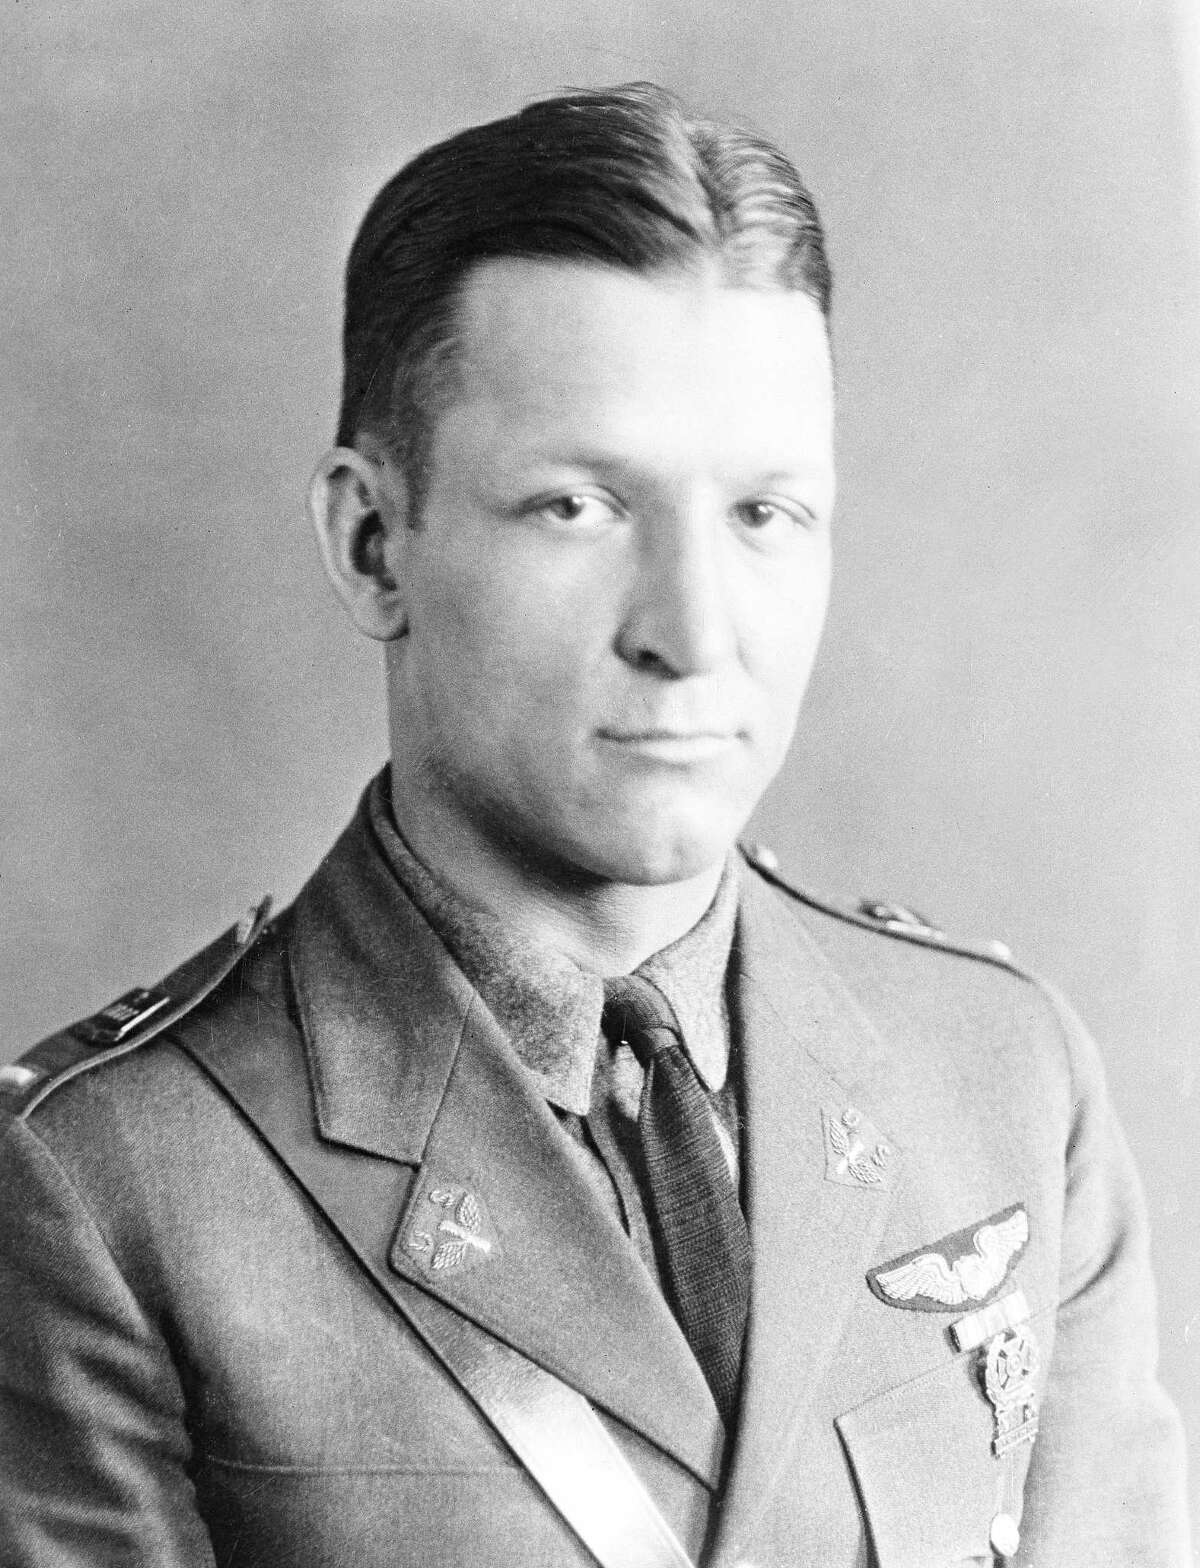 In this handout from the U.S. Air Force, Brig. Gen. Kenneth N. Walker of Glendale, Calif., is shown in this undated photo. Nearly 75 years after his father disappeared during a bombing mission over a remote Pacific island, Douglas Walker, the son of the highest-ranking recipient of the Medal of Honor still listed as missing from World War II, is pushing for renewed interest in finding the crash site and the remains of the crew. (AP Photo/USAF)